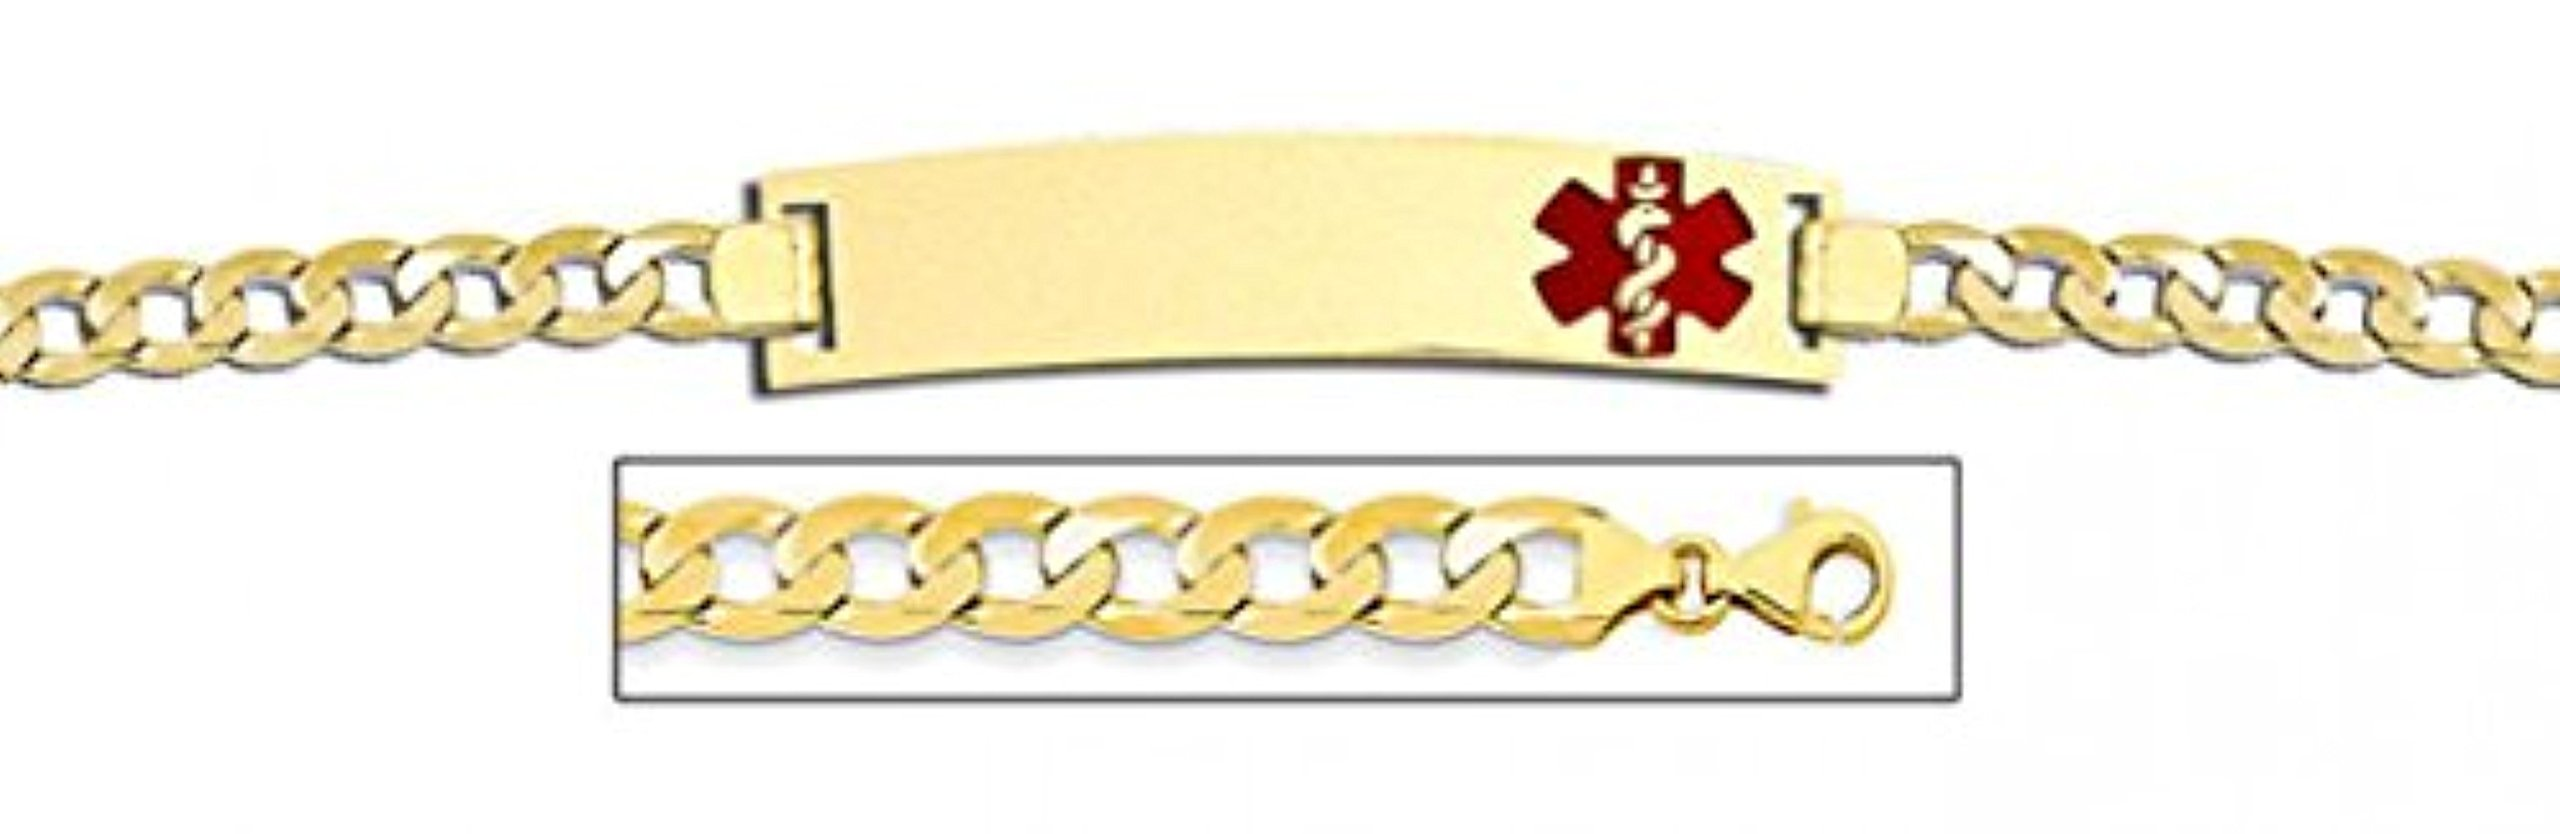 PicturesOnGold.com 14K Gold Medical ID Bracelet W/Curb Chain with Enamel - 8-1/2 WITH ENGRAVING